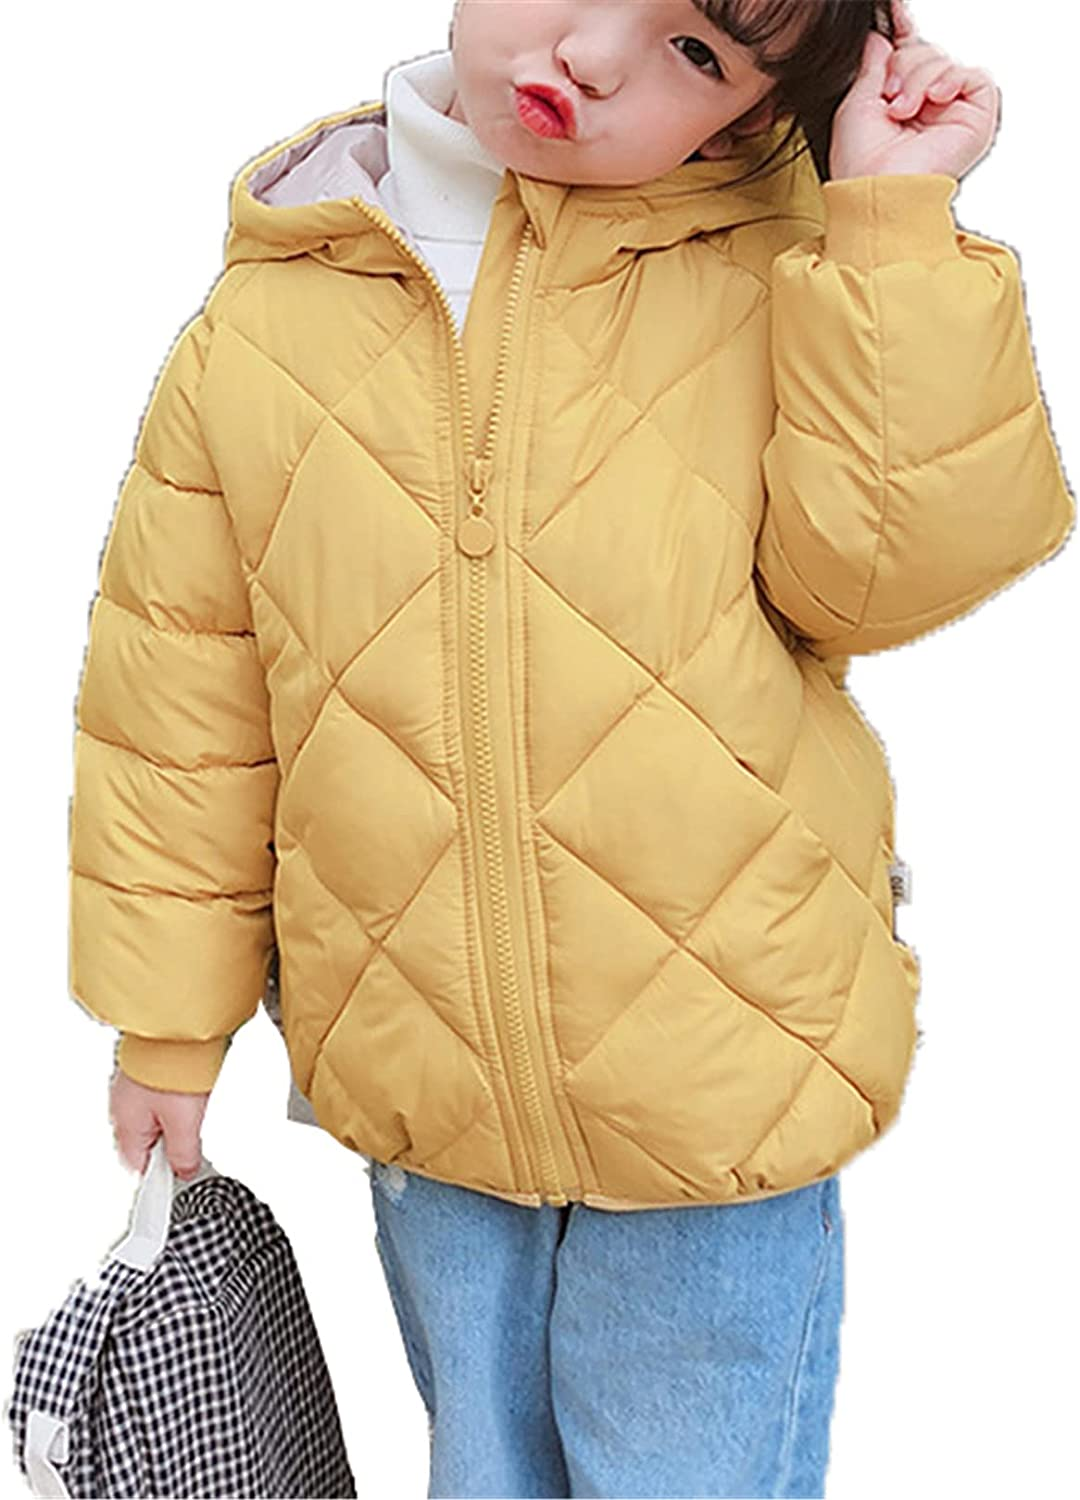 Snhpk Boys Girls Duck Down Coat Padded Thicken Parka Fur Quilted Hooded Warm Winter Outwear Puffer Jacket